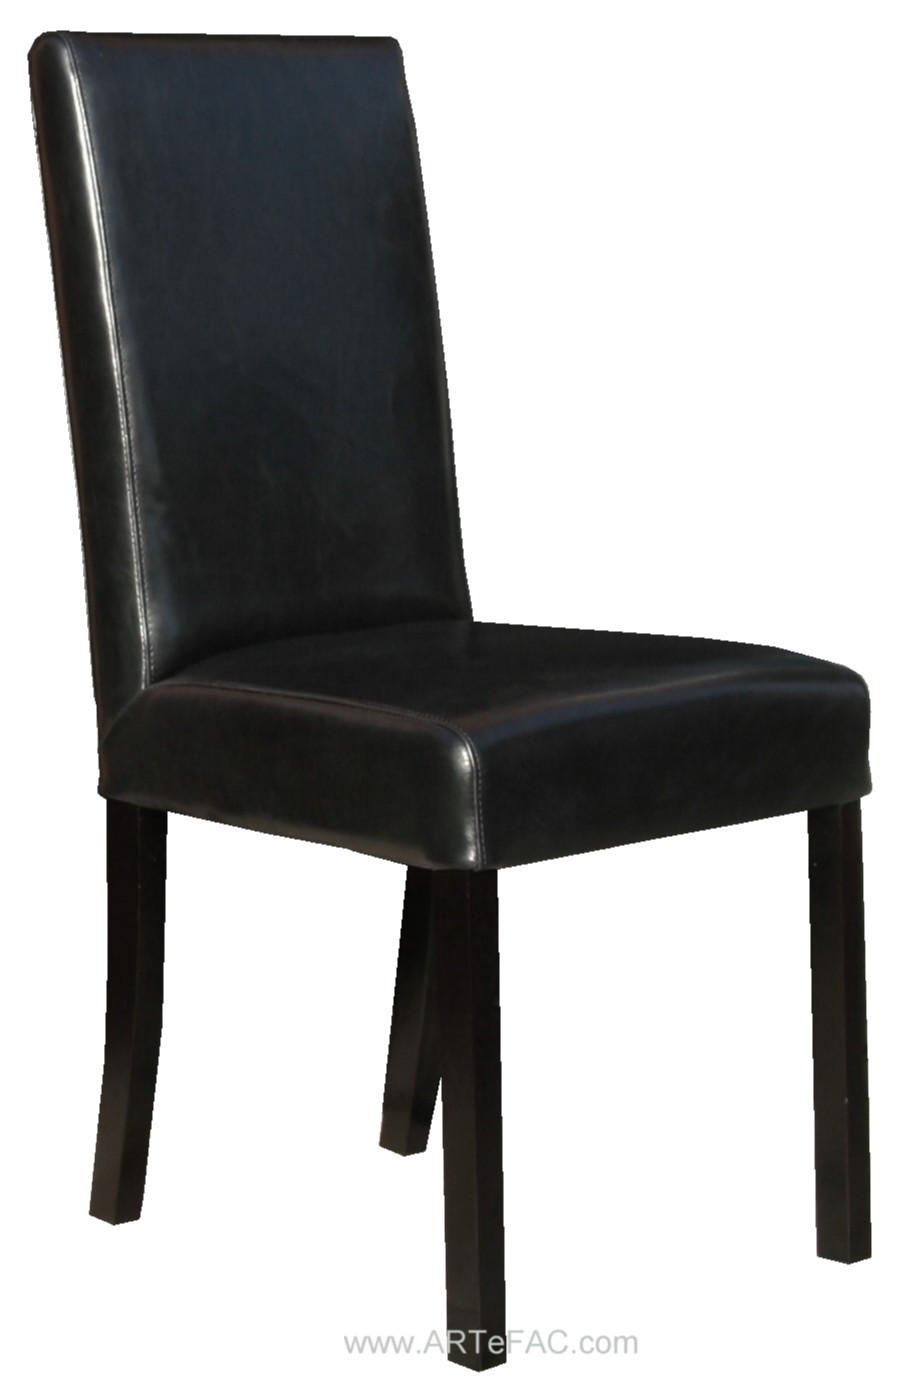 """Best ideas about Black Dining Room Chairs . Save or Pin """"Black Leather Dining Room Chairs and Leather Bar Stools Now."""